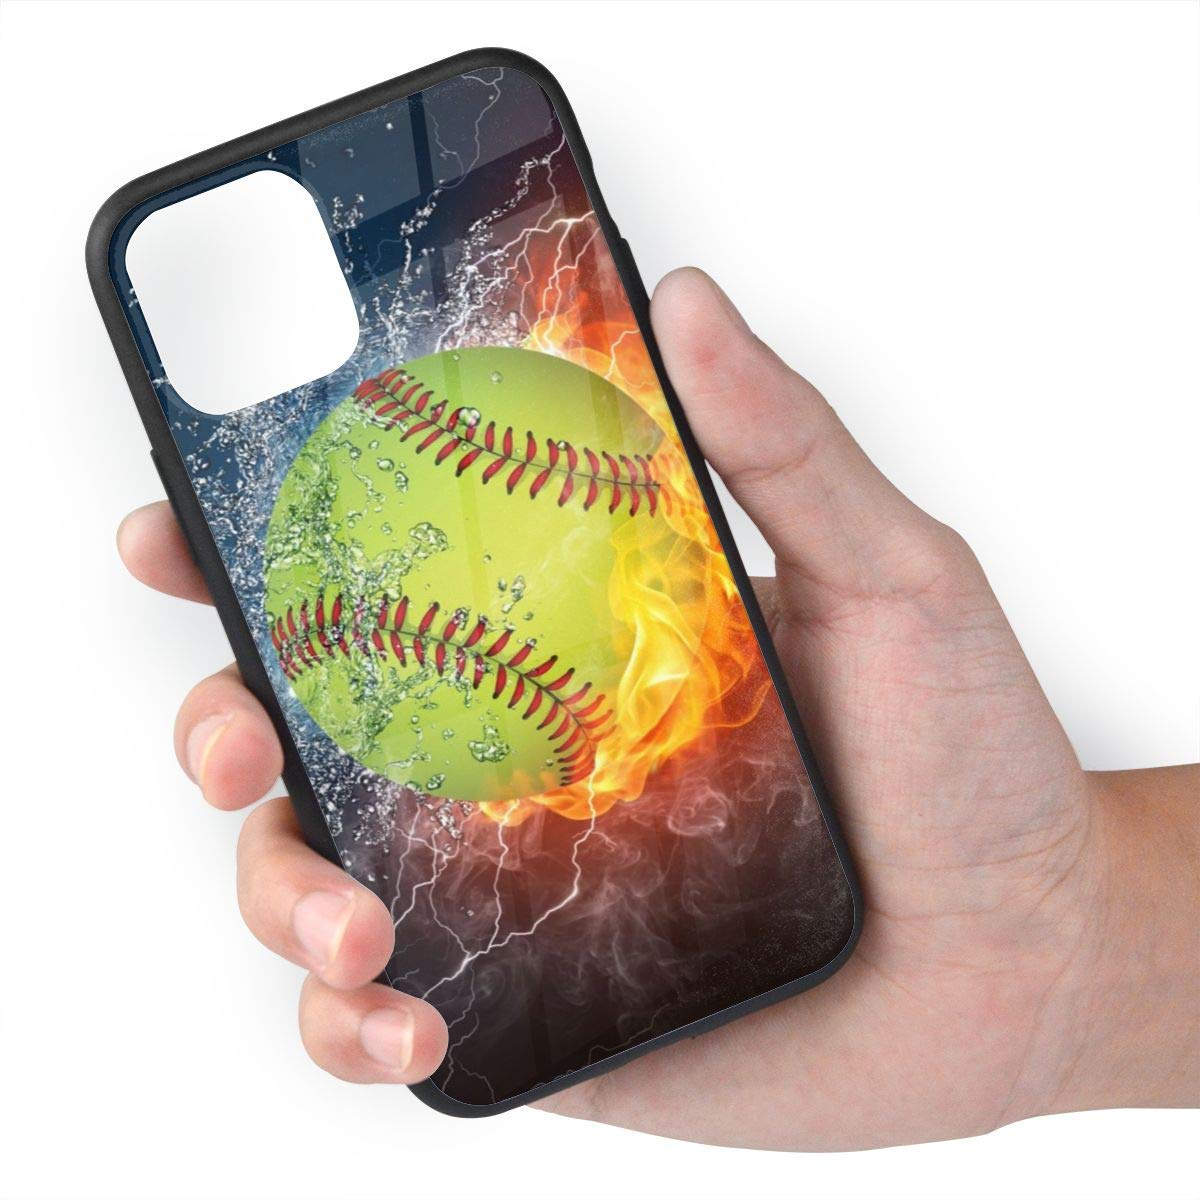 TMVFPYR Fire Softball Case for iPhone 11 Pro Max, TPU Soft-Edge Scratch-Resistant Protective Hard Case with Bullet-Proof Glass